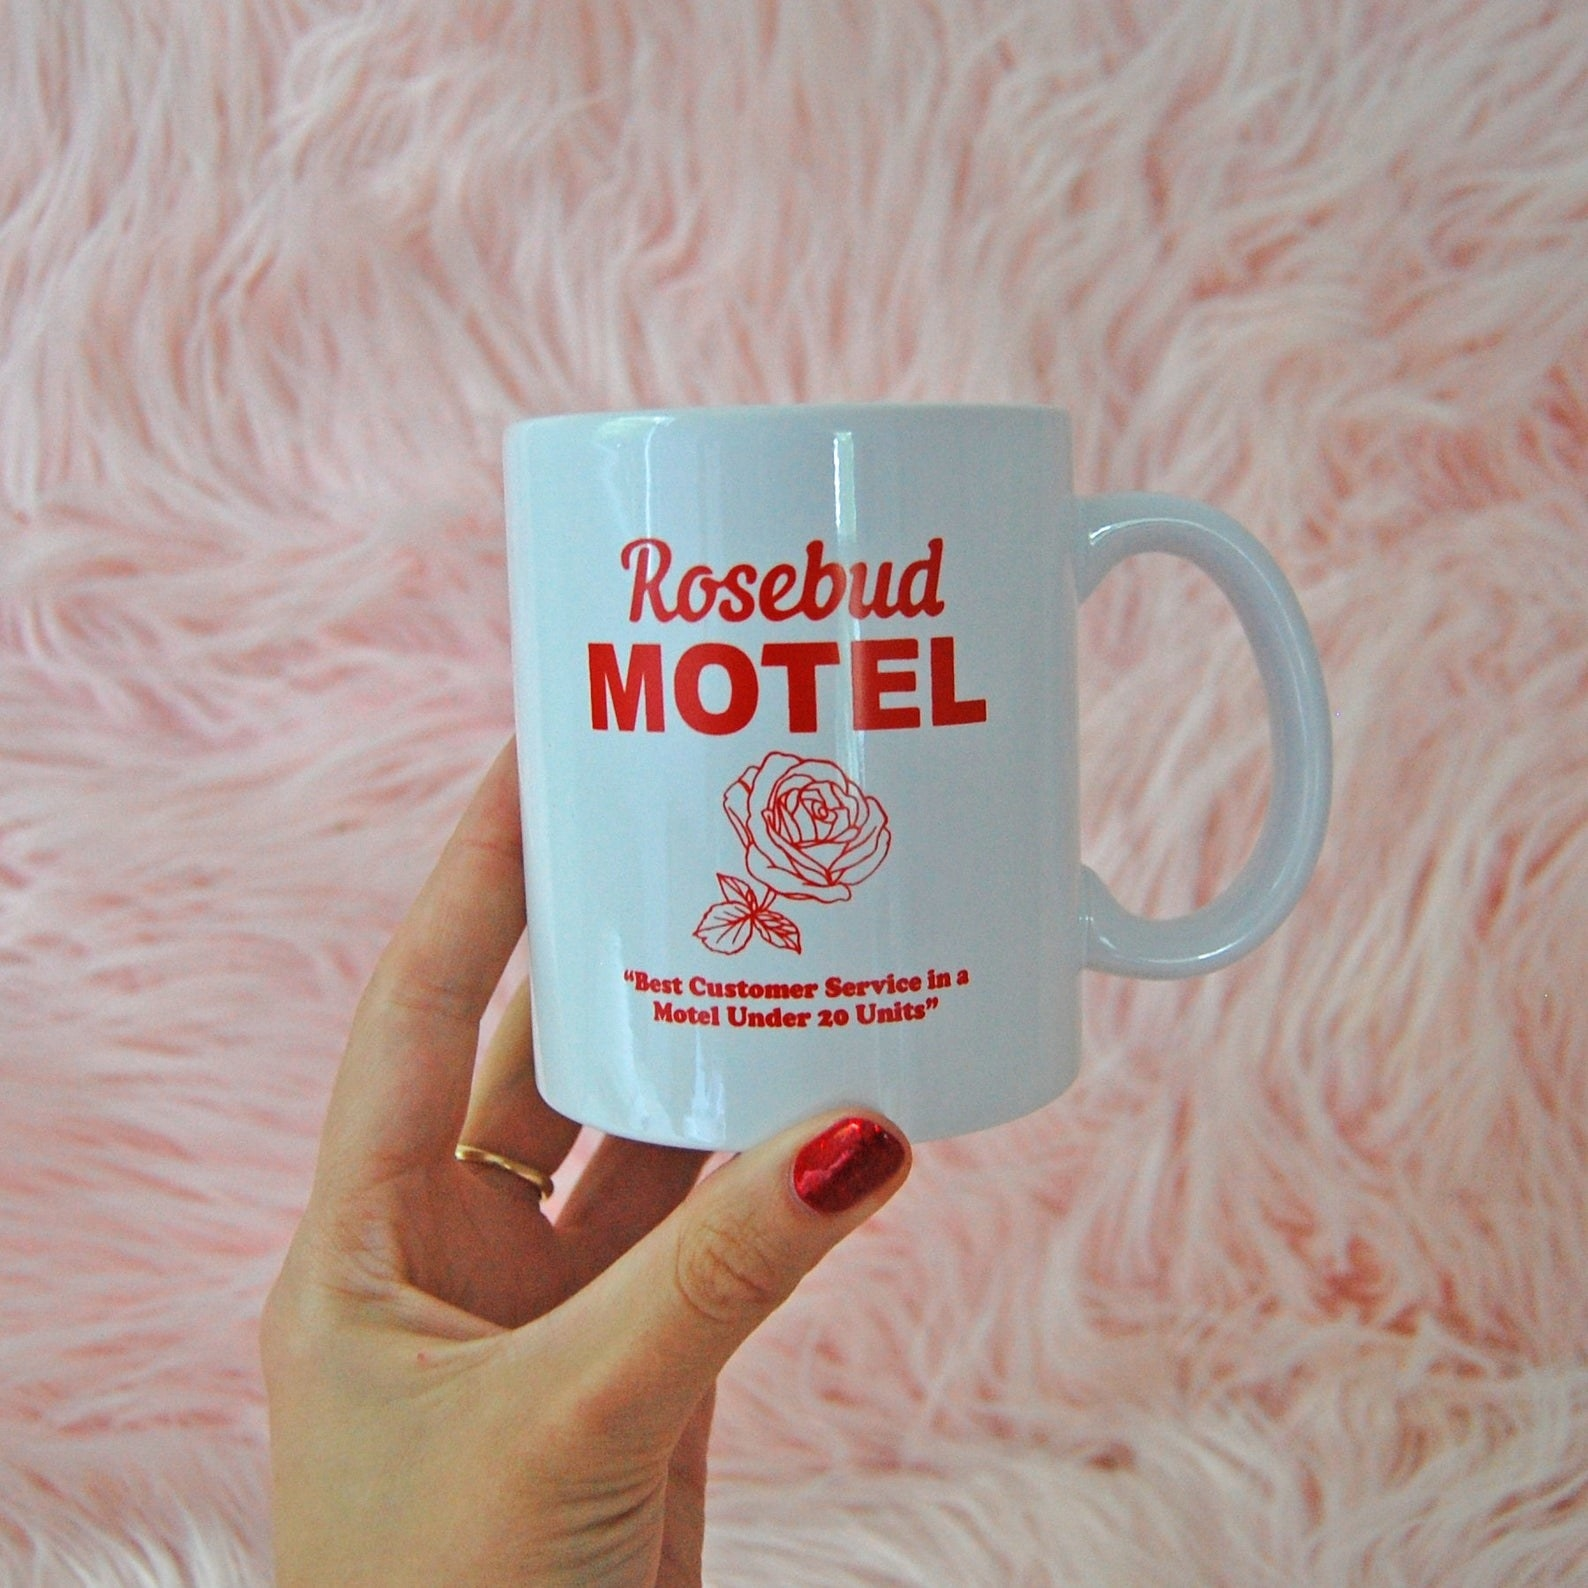 A white mug that says Rosebud Motel with a rose on it